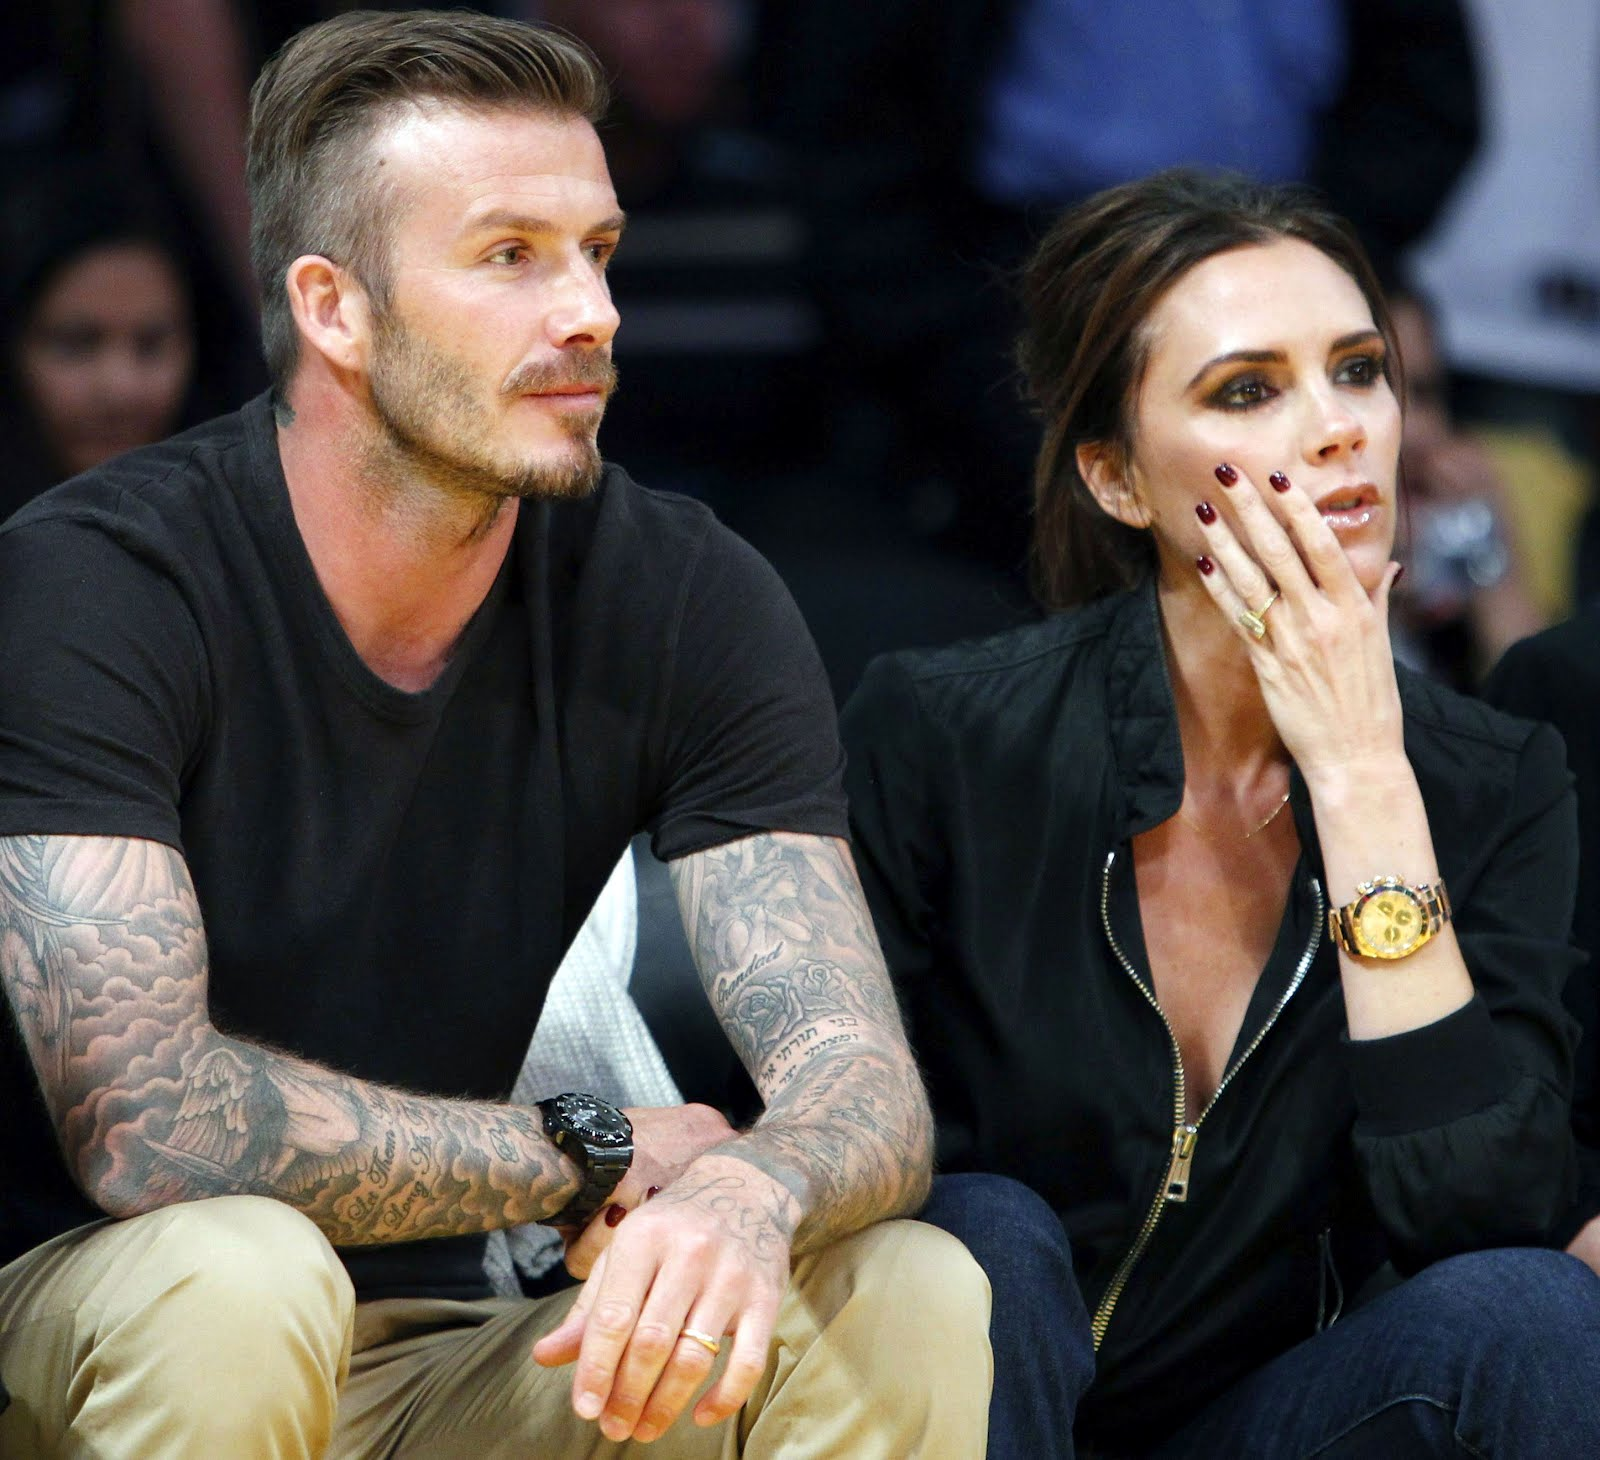 http://2.bp.blogspot.com/-cRMgk1aB27s/T61t6xBf4JI/AAAAAAAAcco/5TB2wQQSYcU/s1600/David-and-Victoria-Beckham-Rolex-at-LA-Lakers-Game.jpg